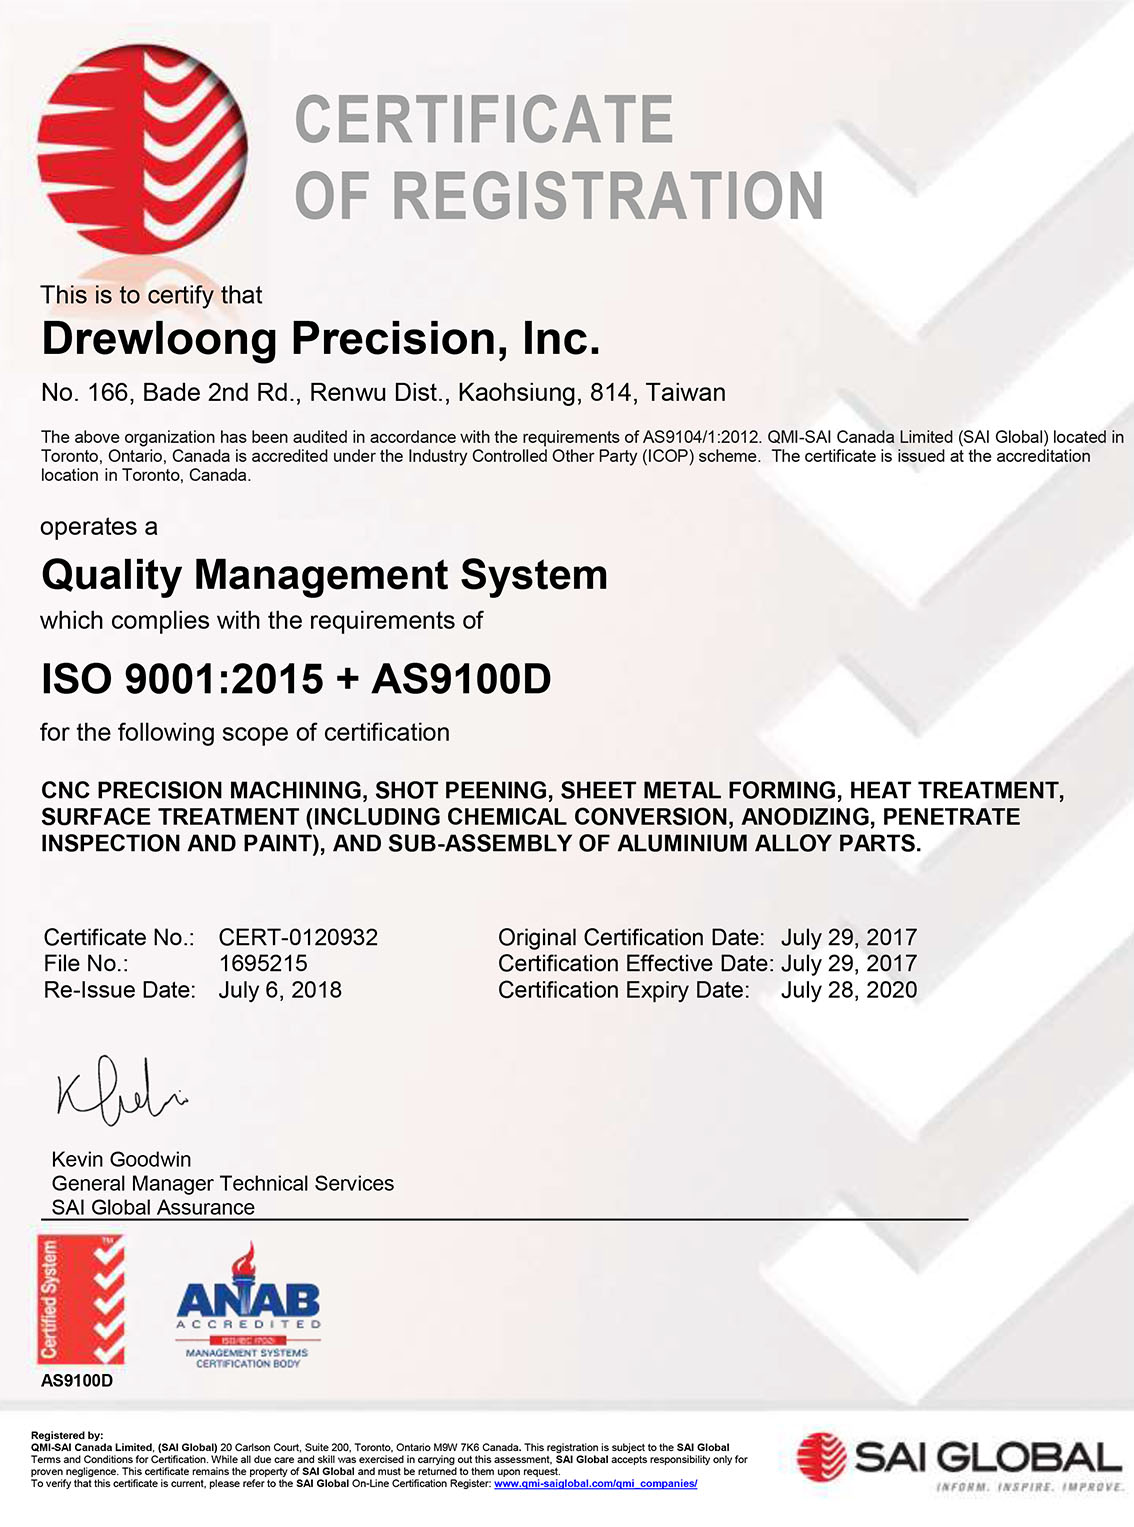 AS Certification – Drewloong Precision, Inc  (DPI)